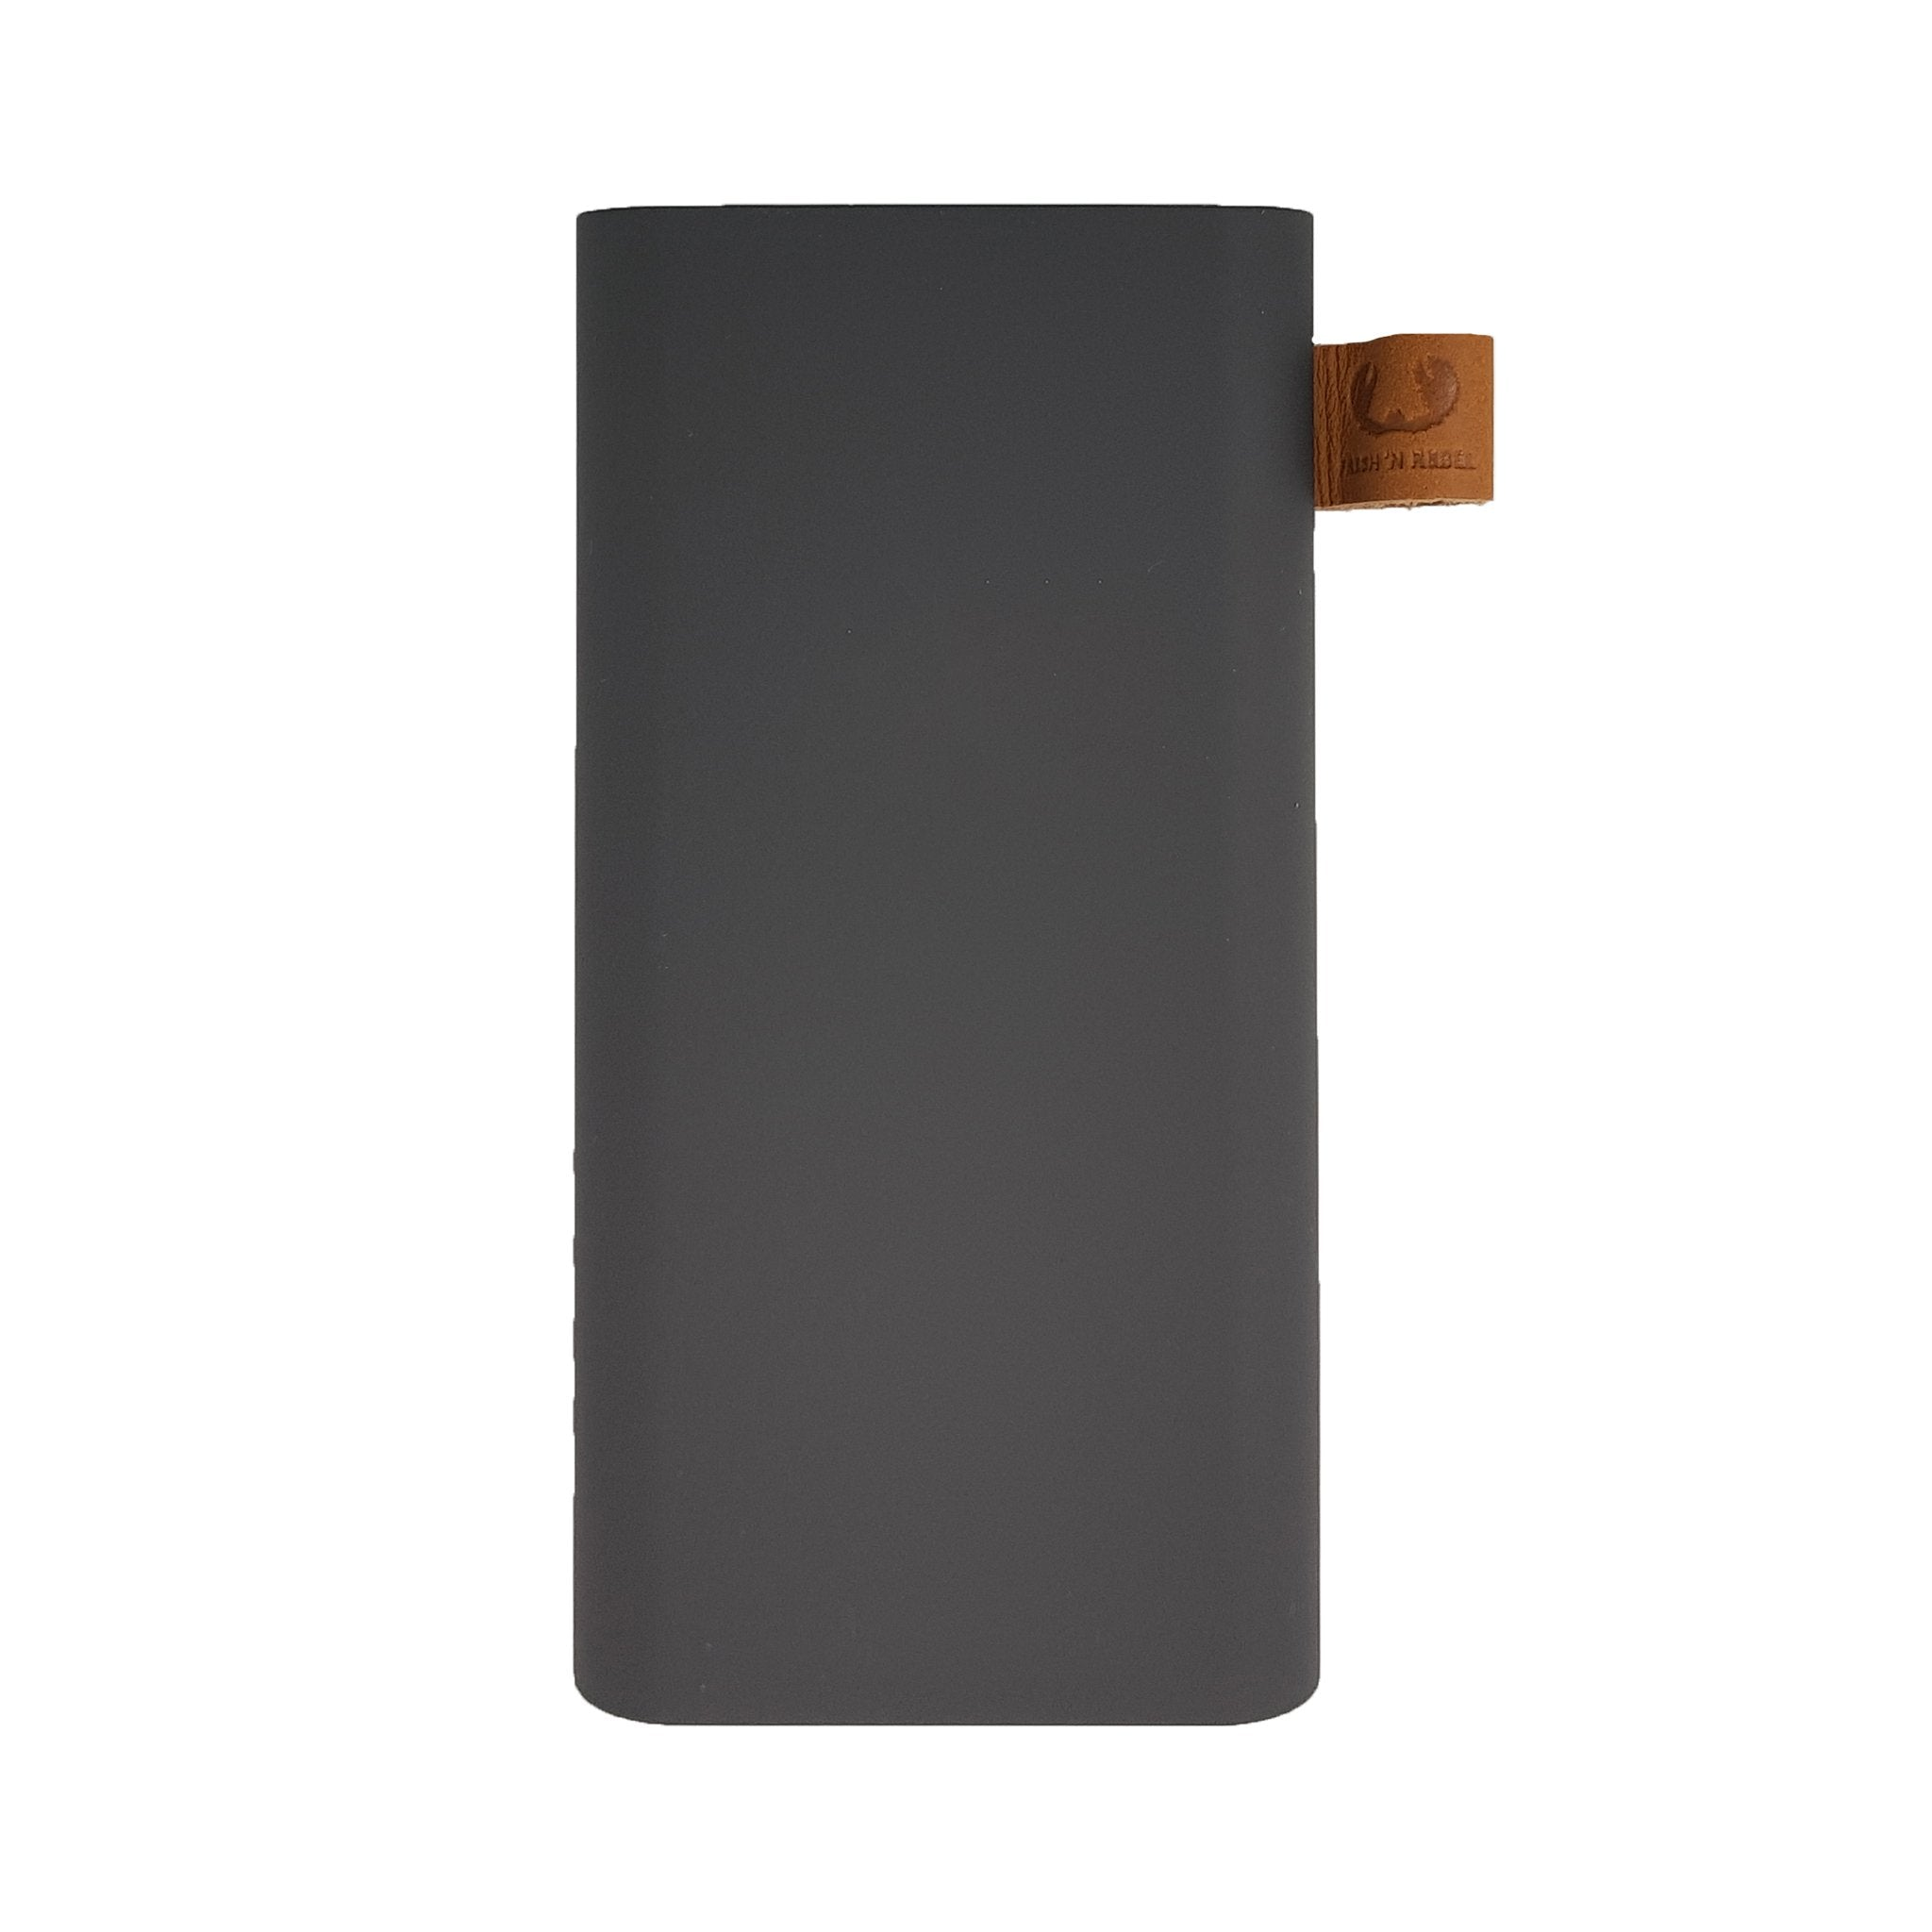 fresh n rebel powerbank storm grey